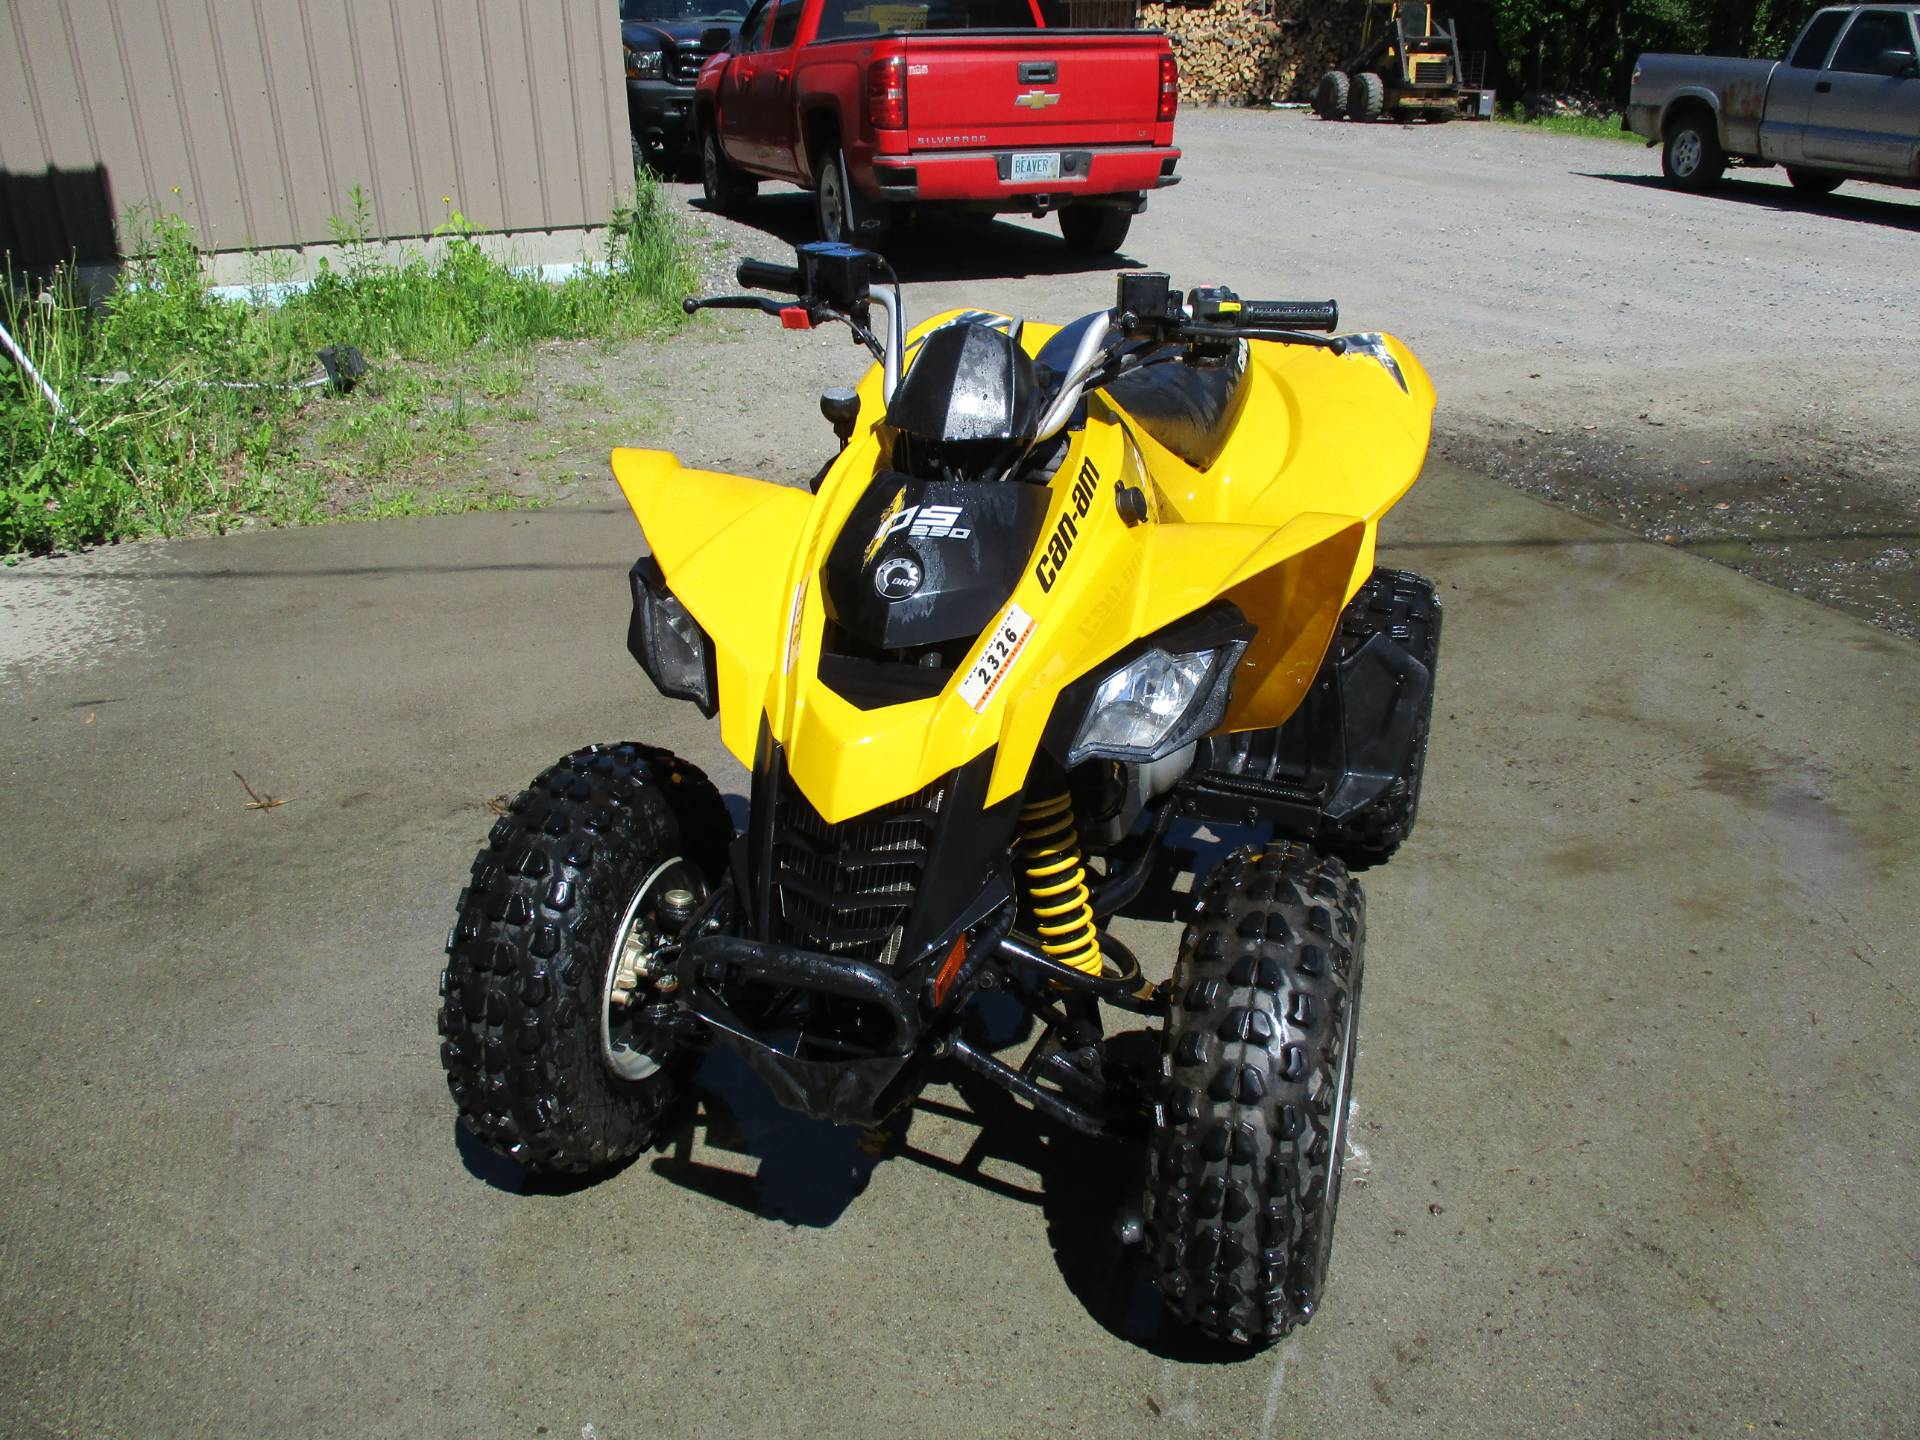 Used 2015 Can-Am DS 250® ATVs in Colebrook, NH | Stock Number: CAN020238